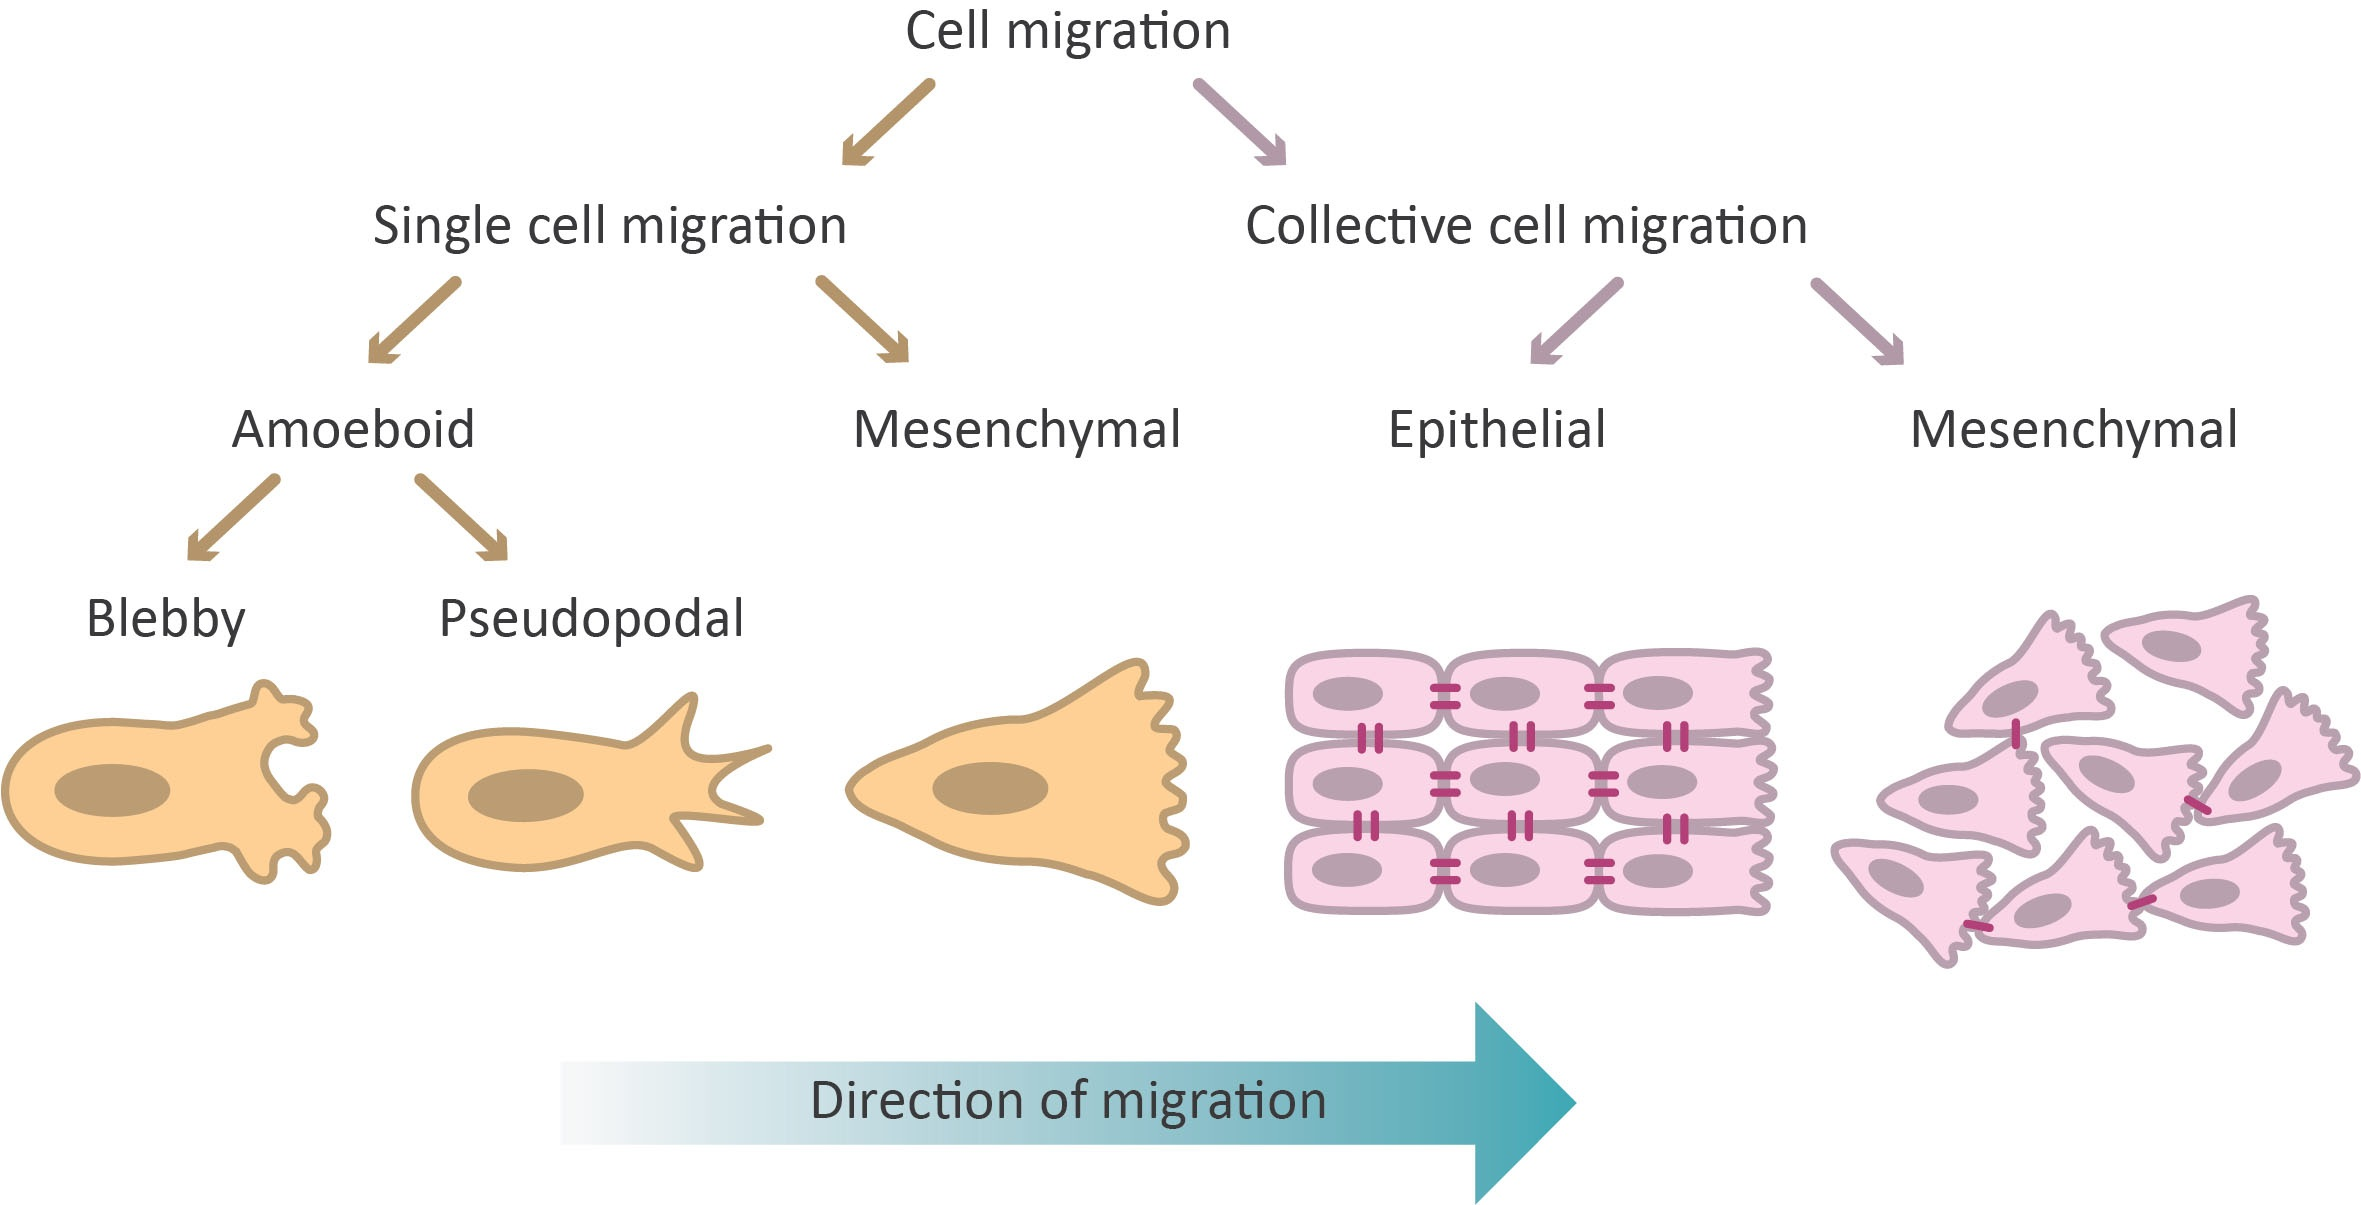 modes of cell migrations, based on cell morphology. single cell migration and collective cell migration